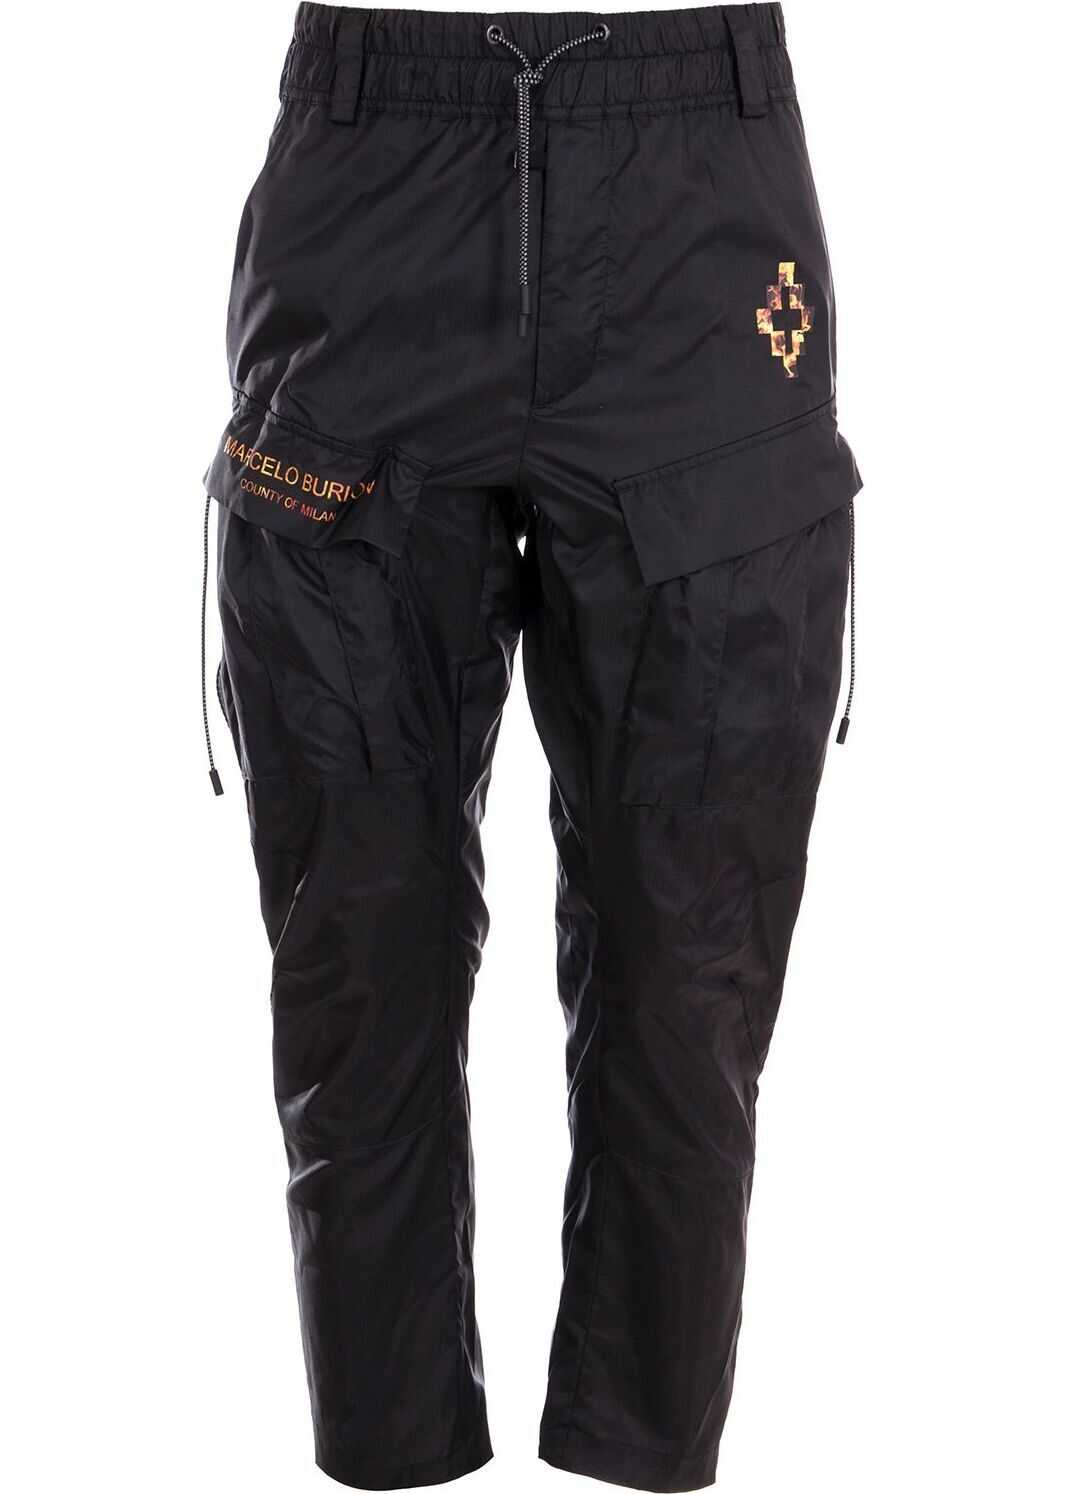 Marcelo Burlon Polyester Pants BLACK